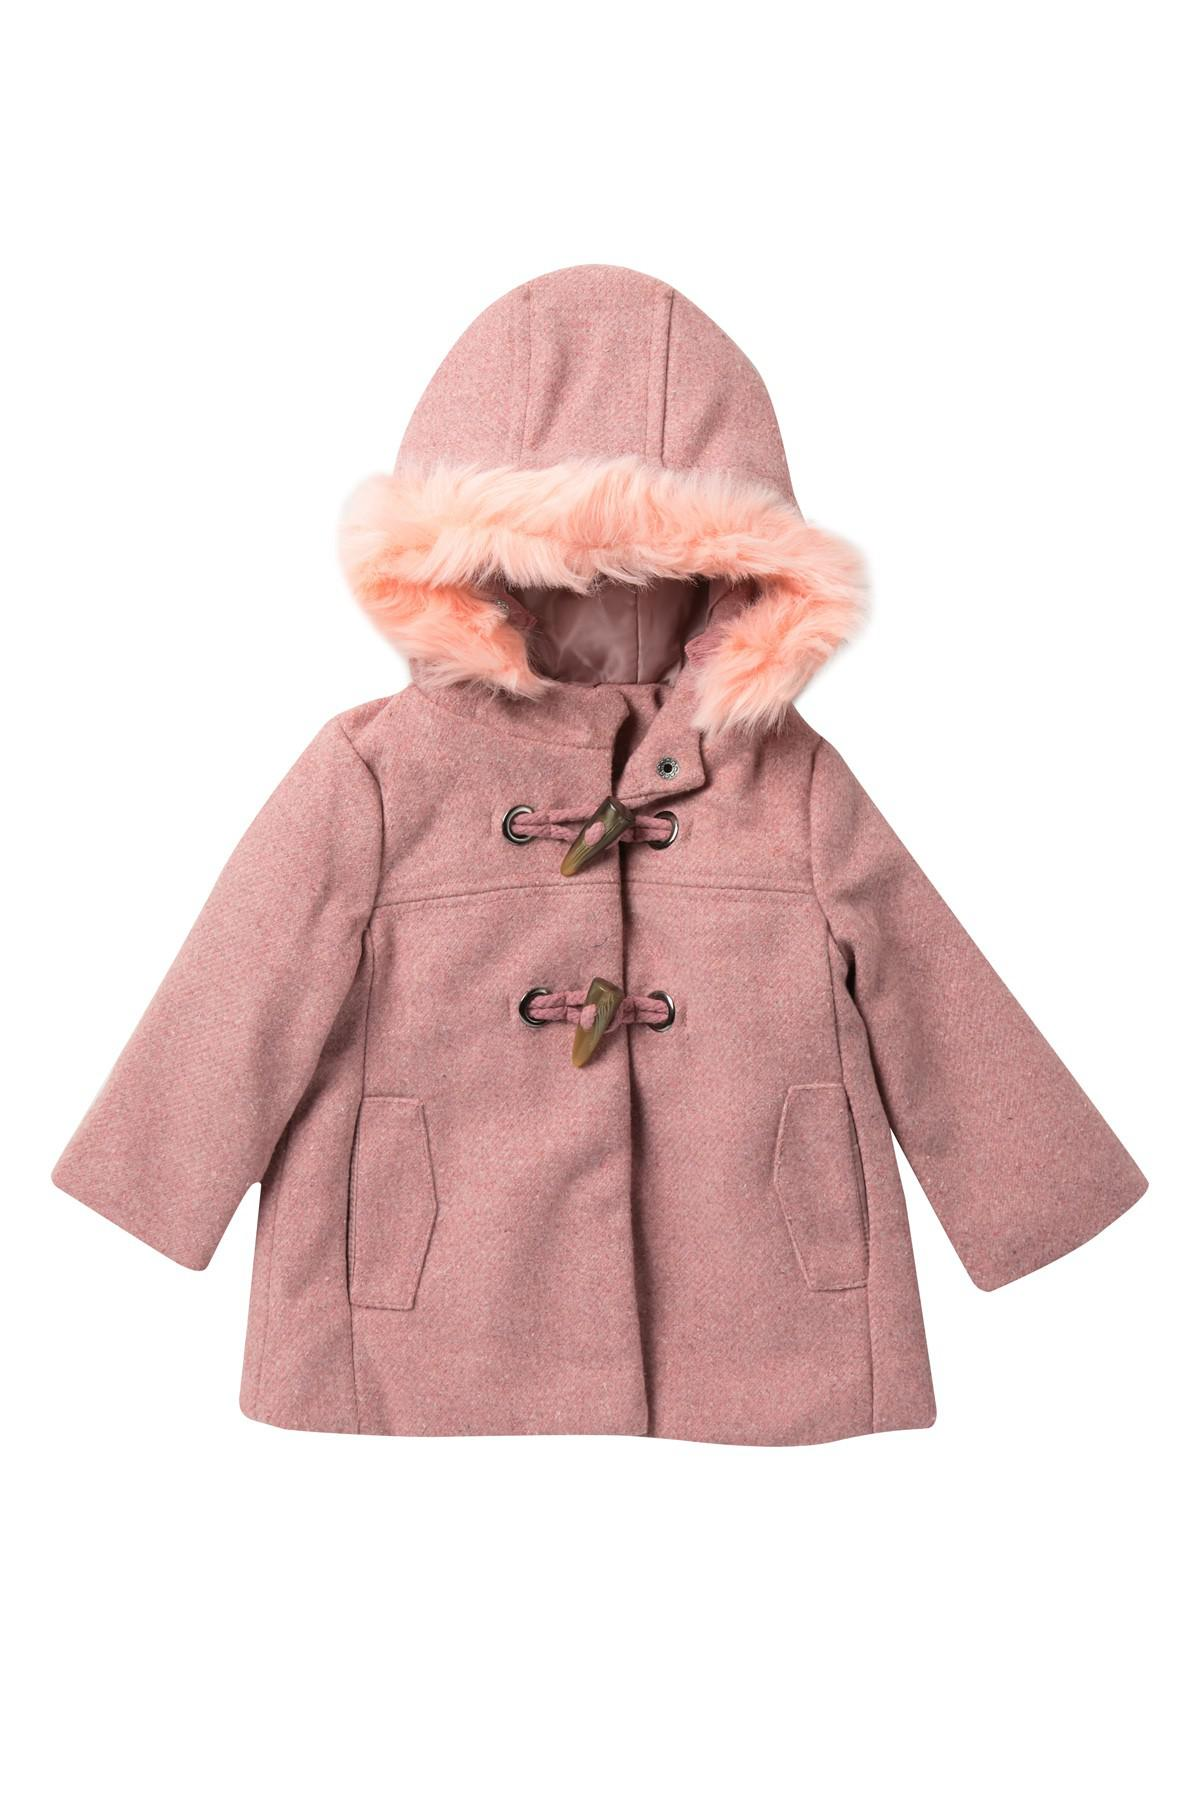 7a67e99934e9 Lyst - Jessica Simpson Faux Fur Trimmed Wool Toggle Coat (baby Girls ...